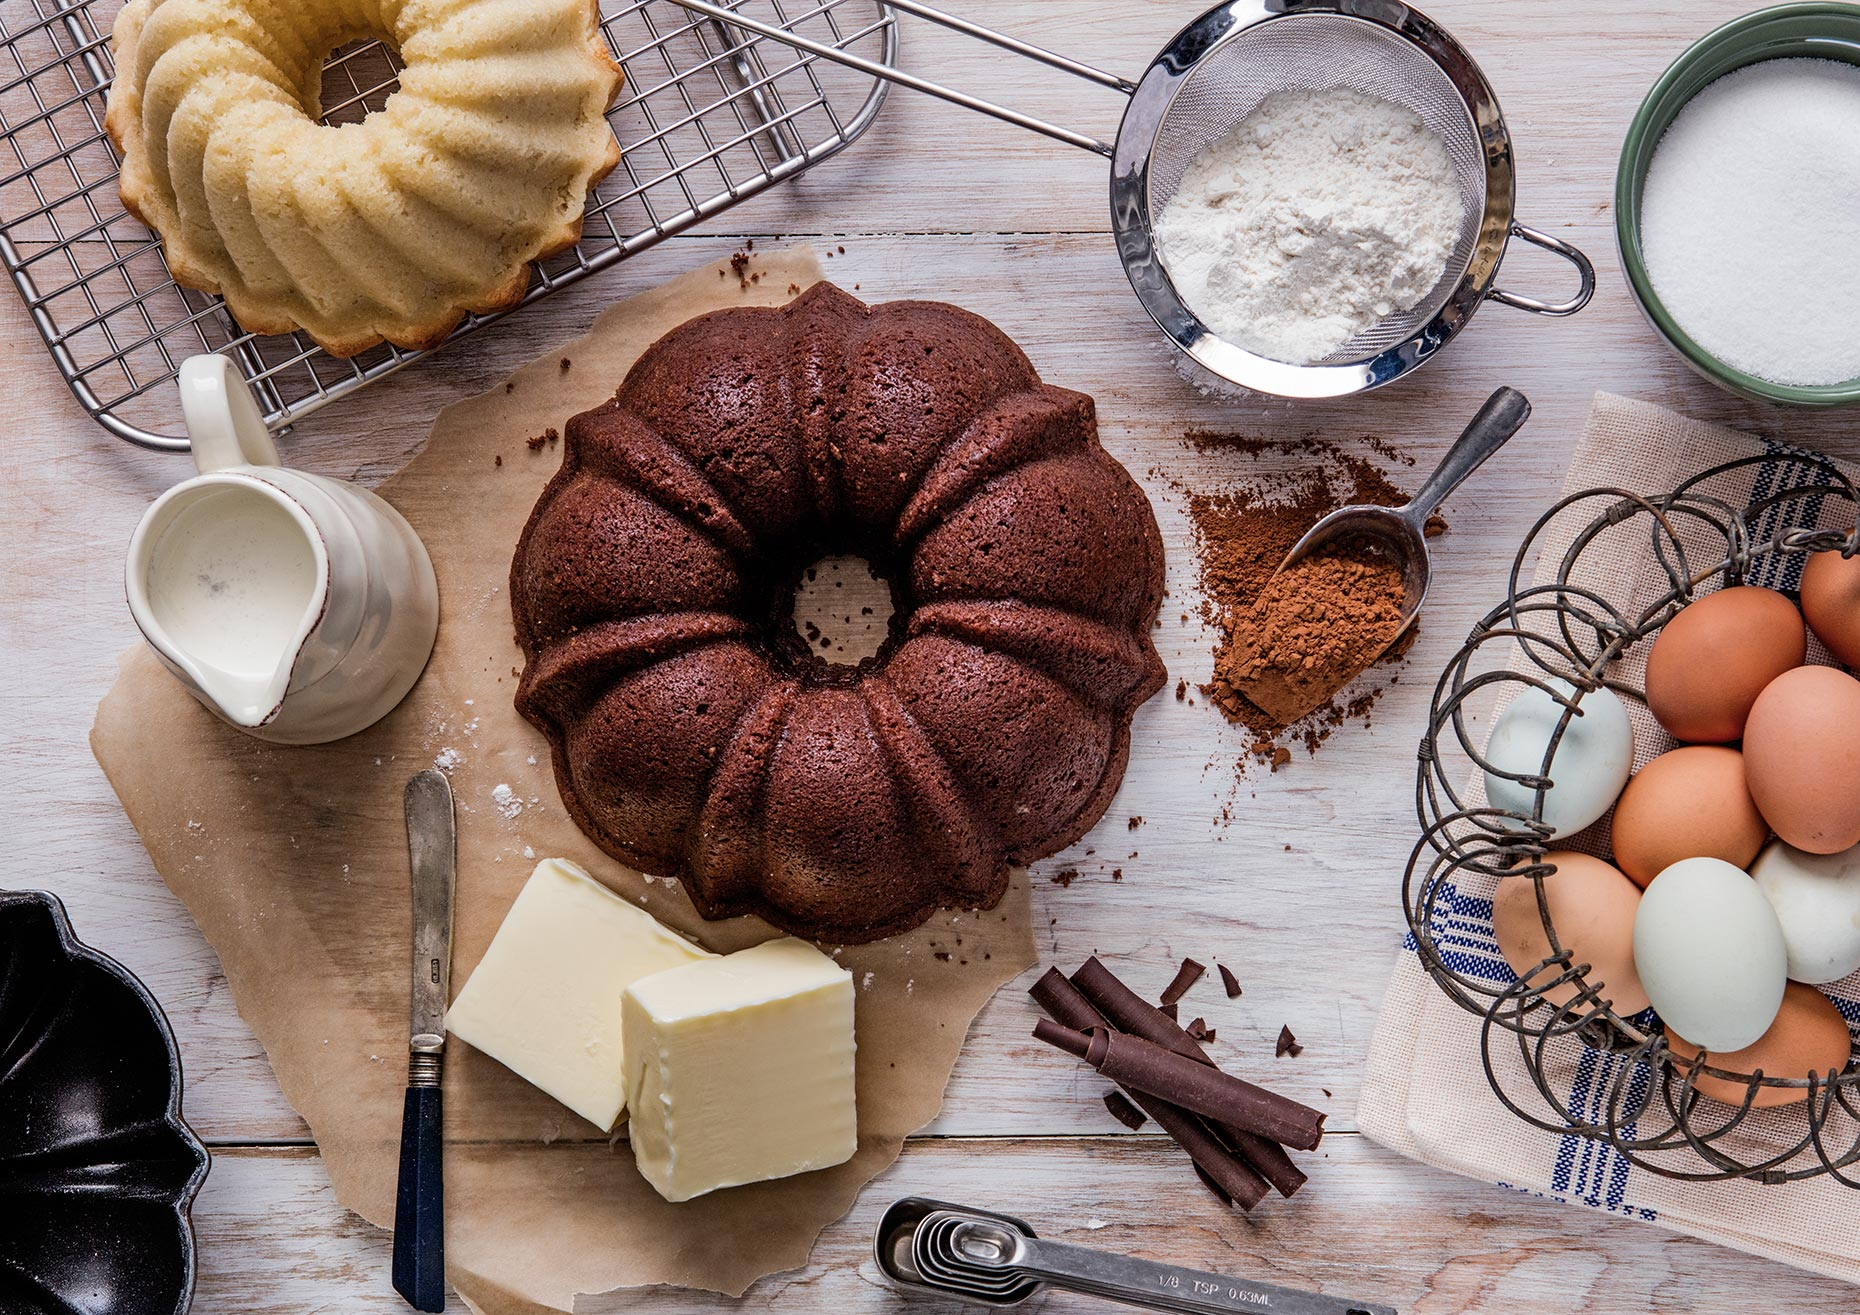 Chocolate Bundt Cake Ingredients